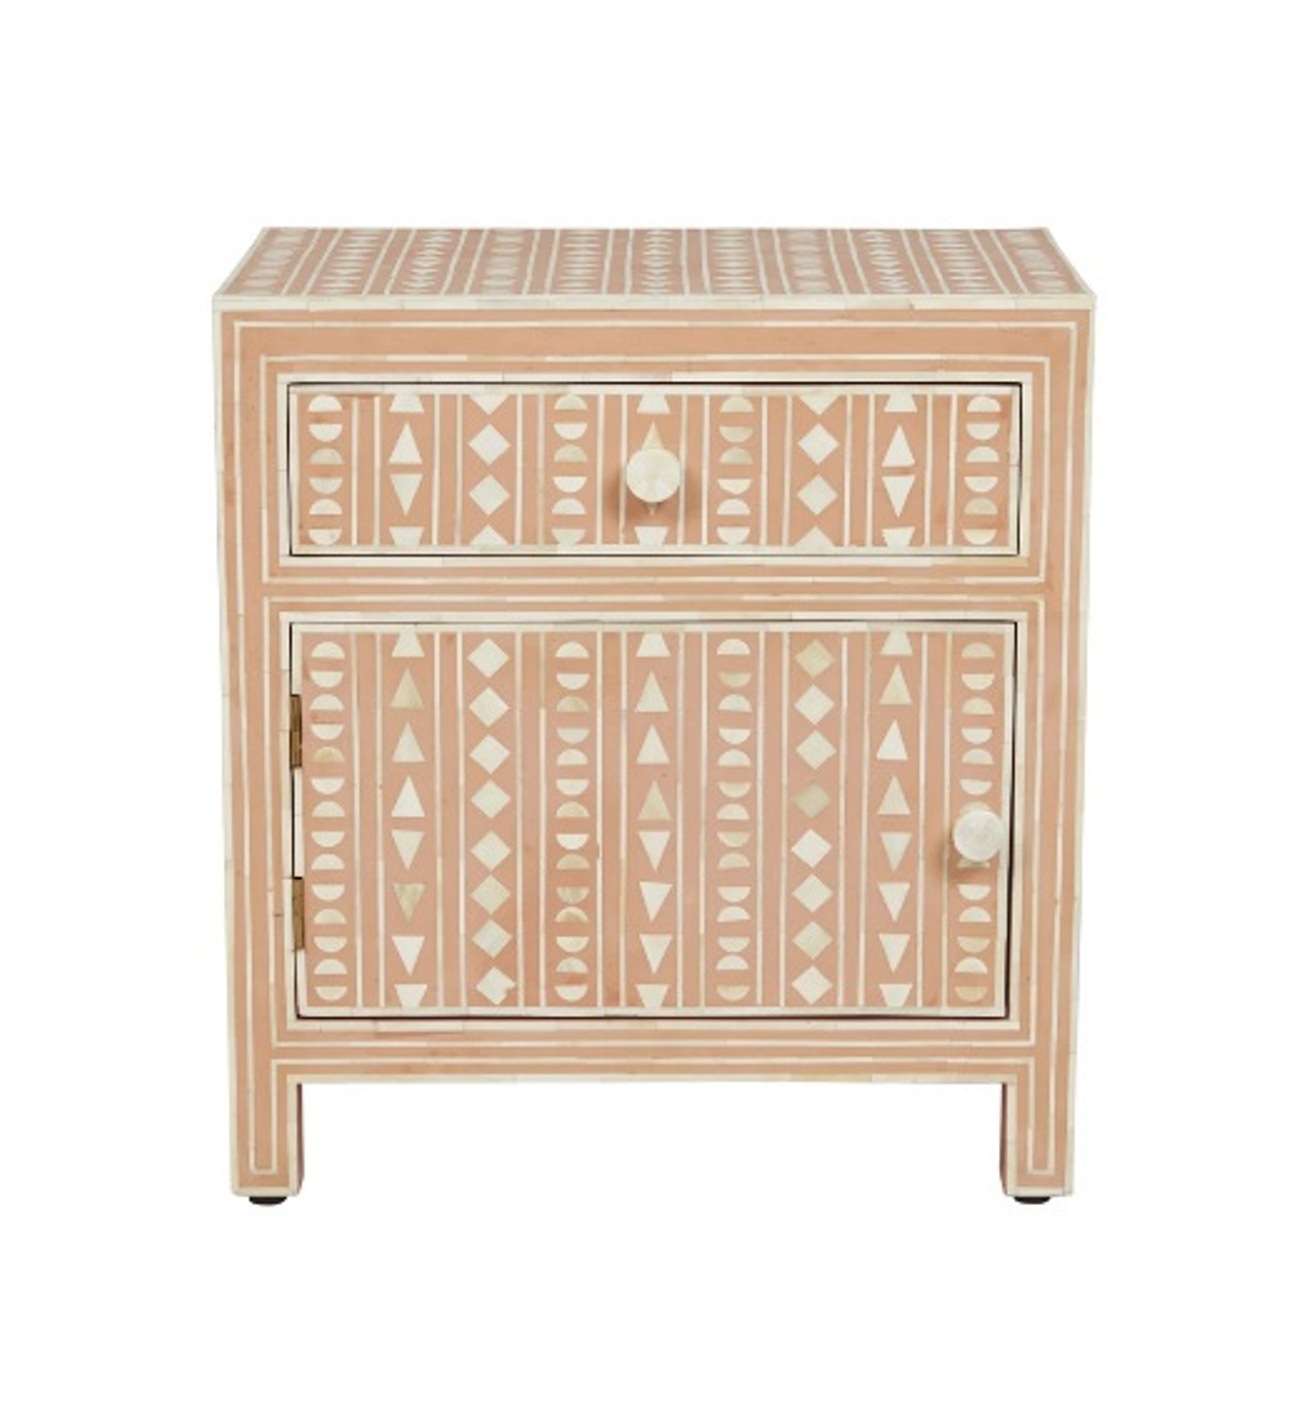 Bone Inlay 1 Drawer 1 Door Tribal Design Large Bedside Table In Pink Color